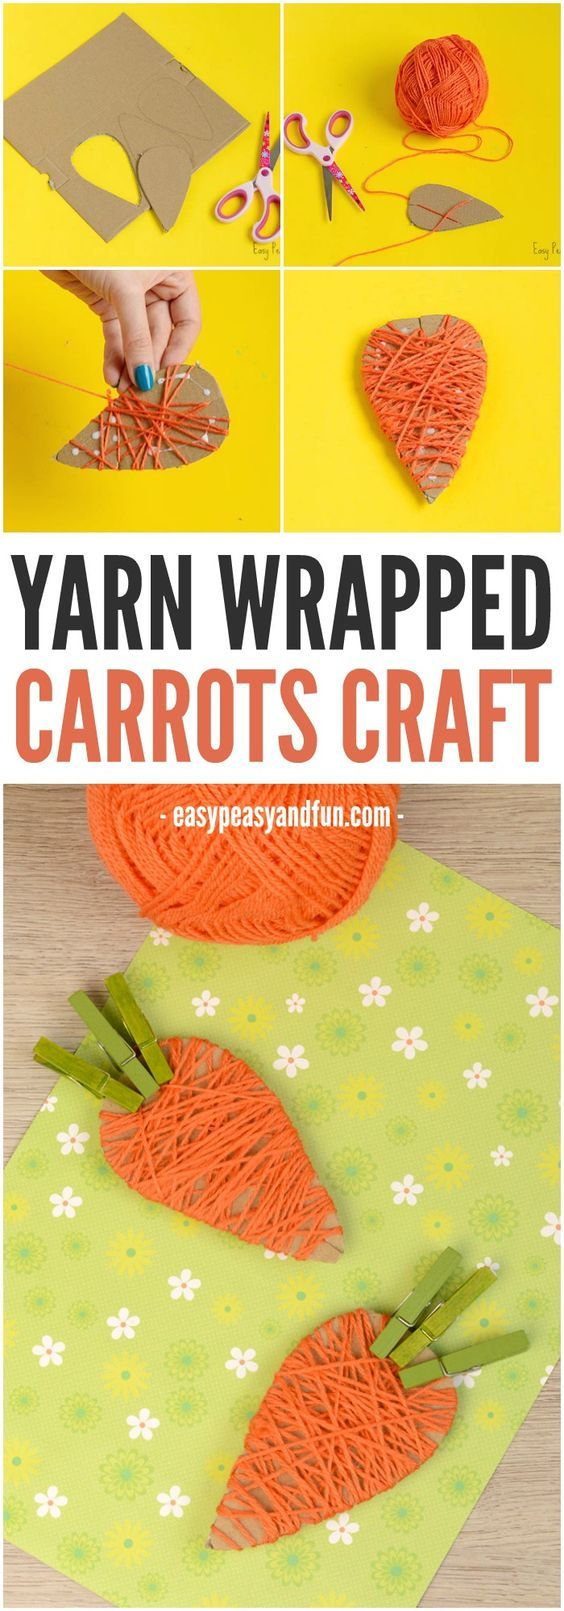 Yarn Wrapped Carrot Craft for Kids